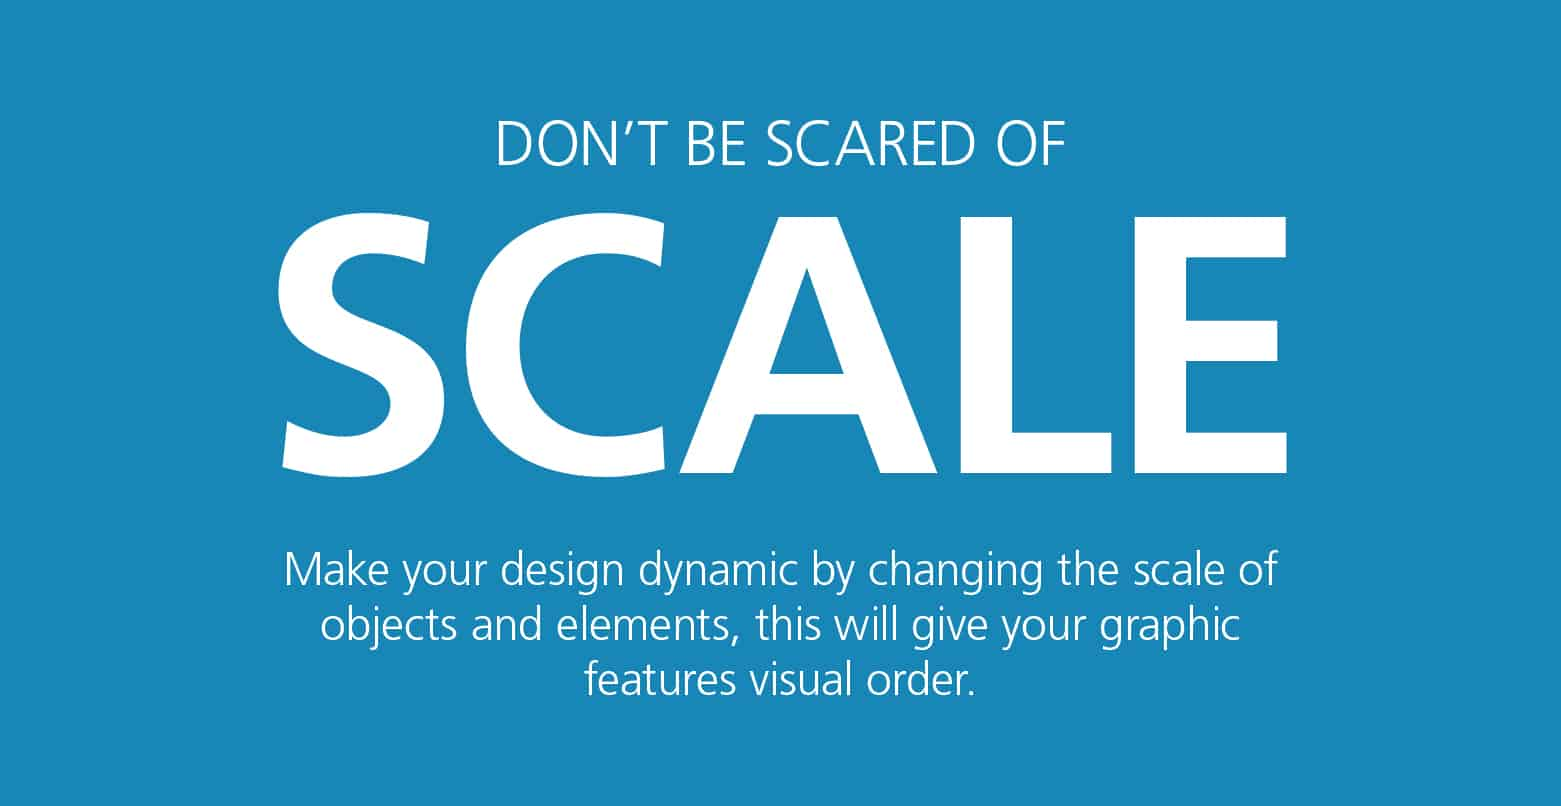 Graphic Design Tip - Don't be scared of scale